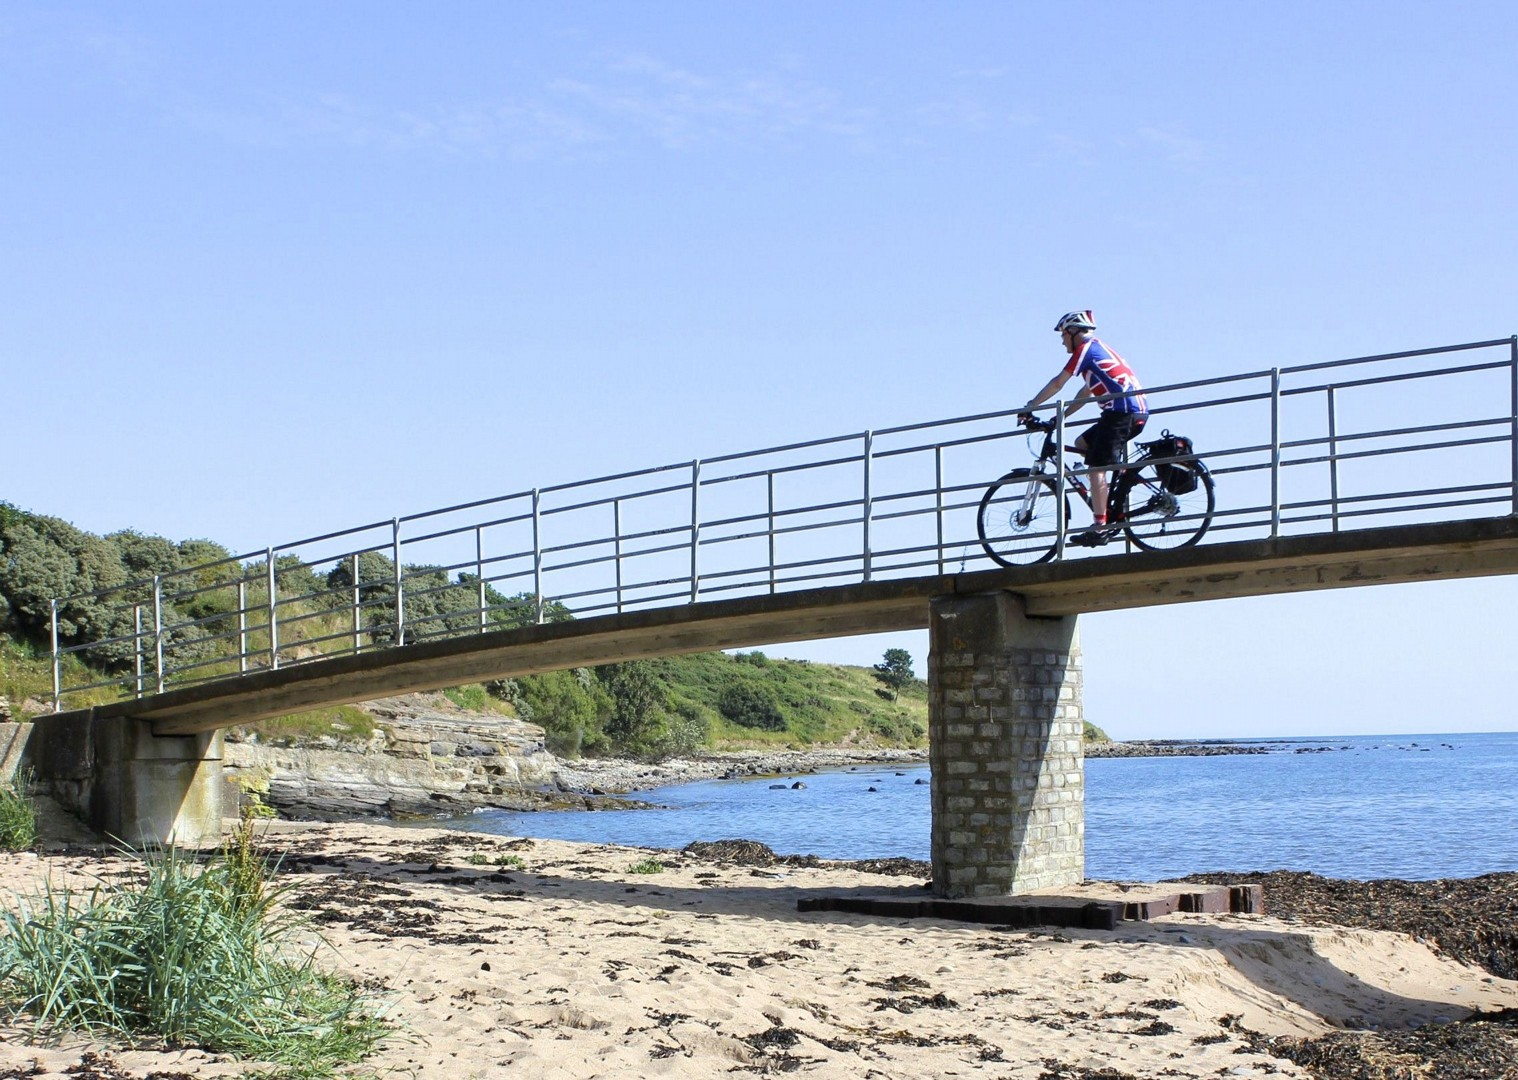 Coast&castles.jpg - UK - Coast and Castles - Self-Guided Leisure Cycling Holiday - Leisure Cycling